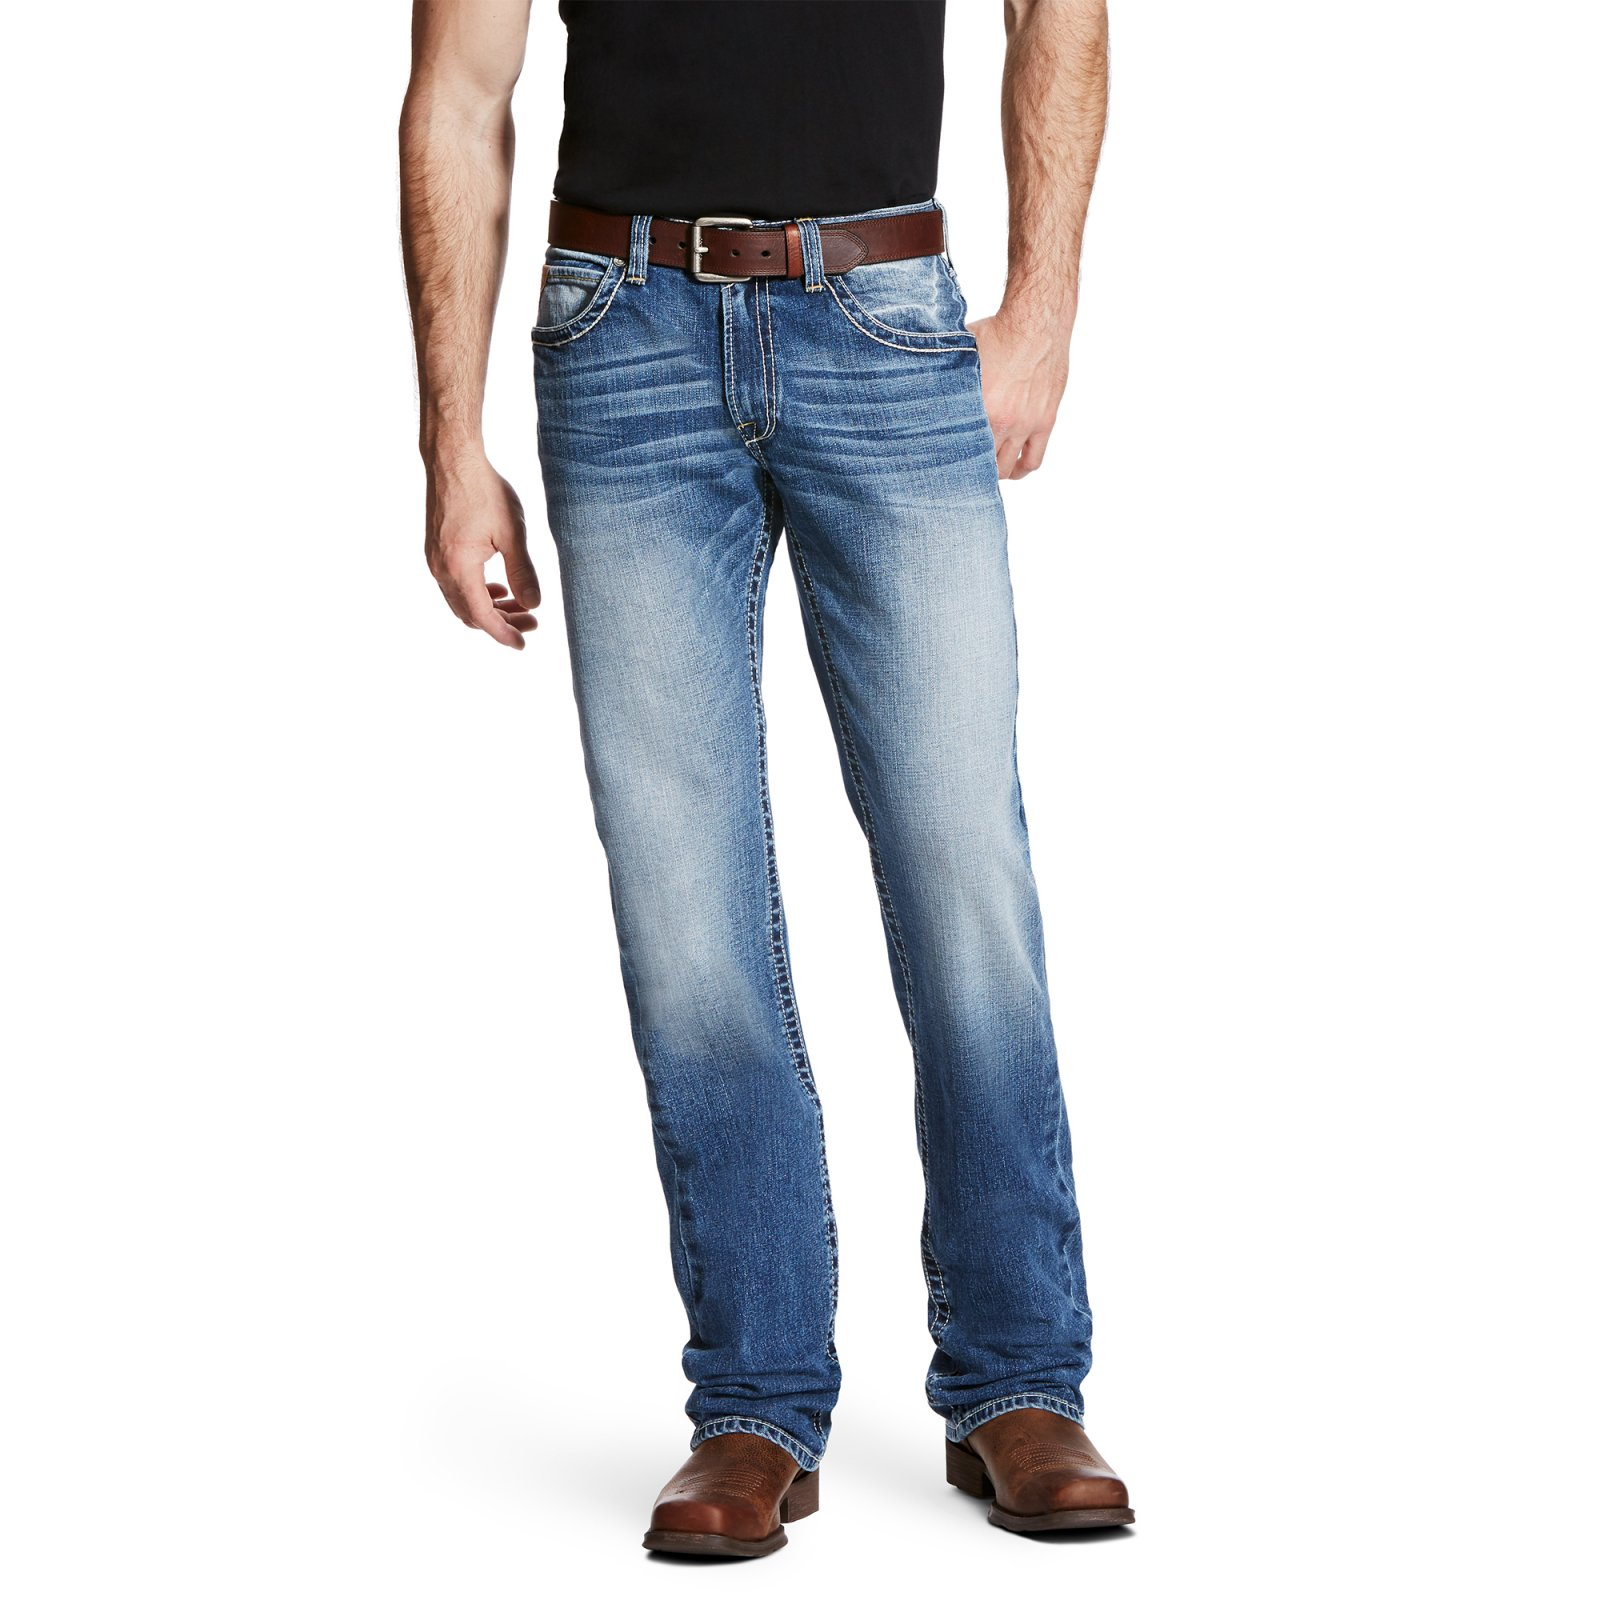 Men's M5 Fargo Jean from Ariat